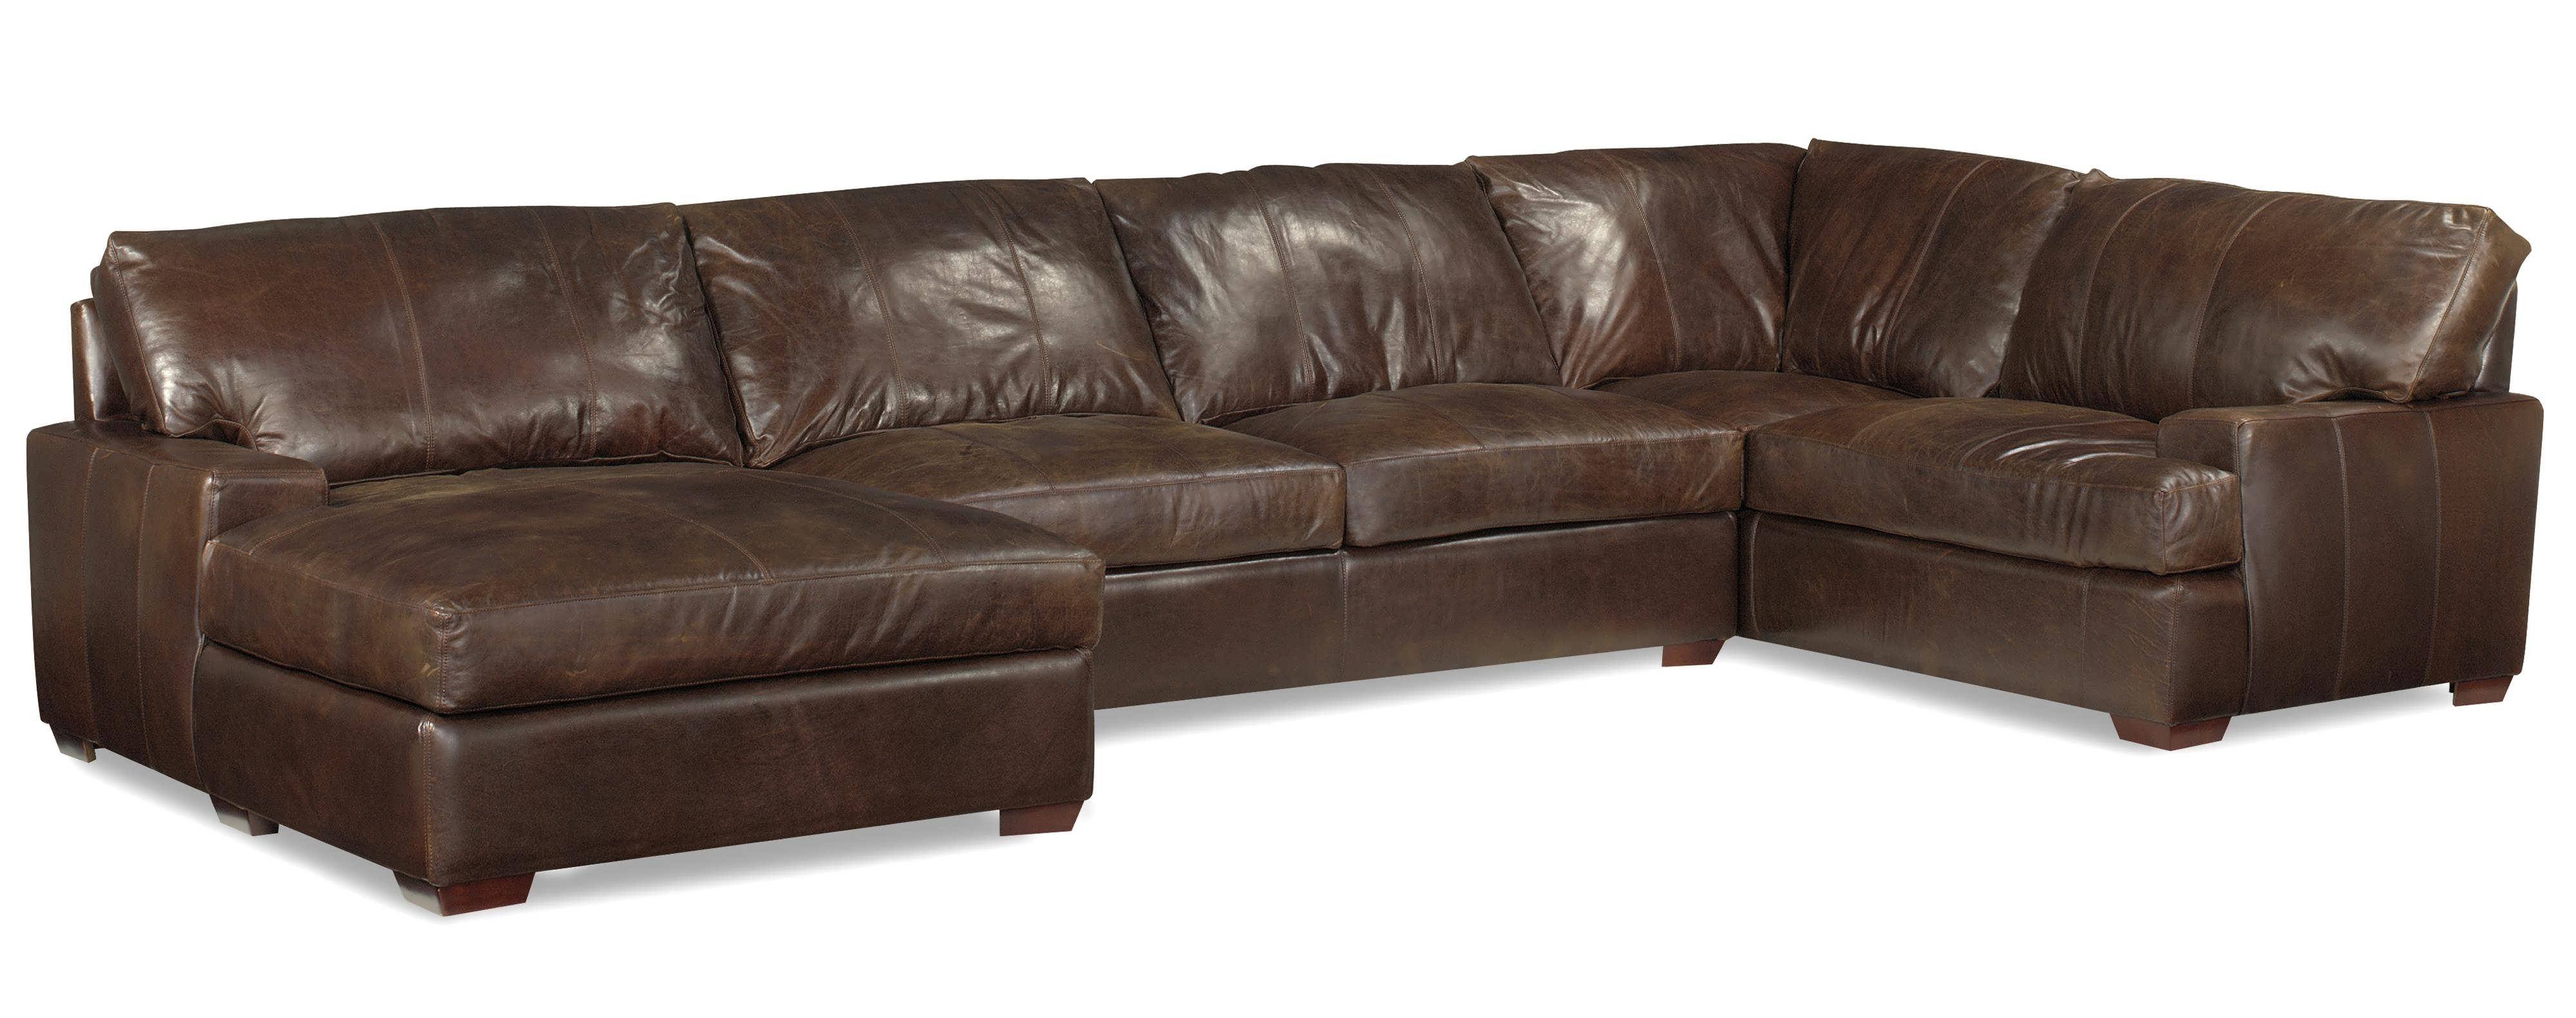 Fashionable Sofa : Small Sectional Couch Best Sectional Sofa Fabric Sectional Regarding Genuine Leather Sectionals With Chaise (View 4 of 15)